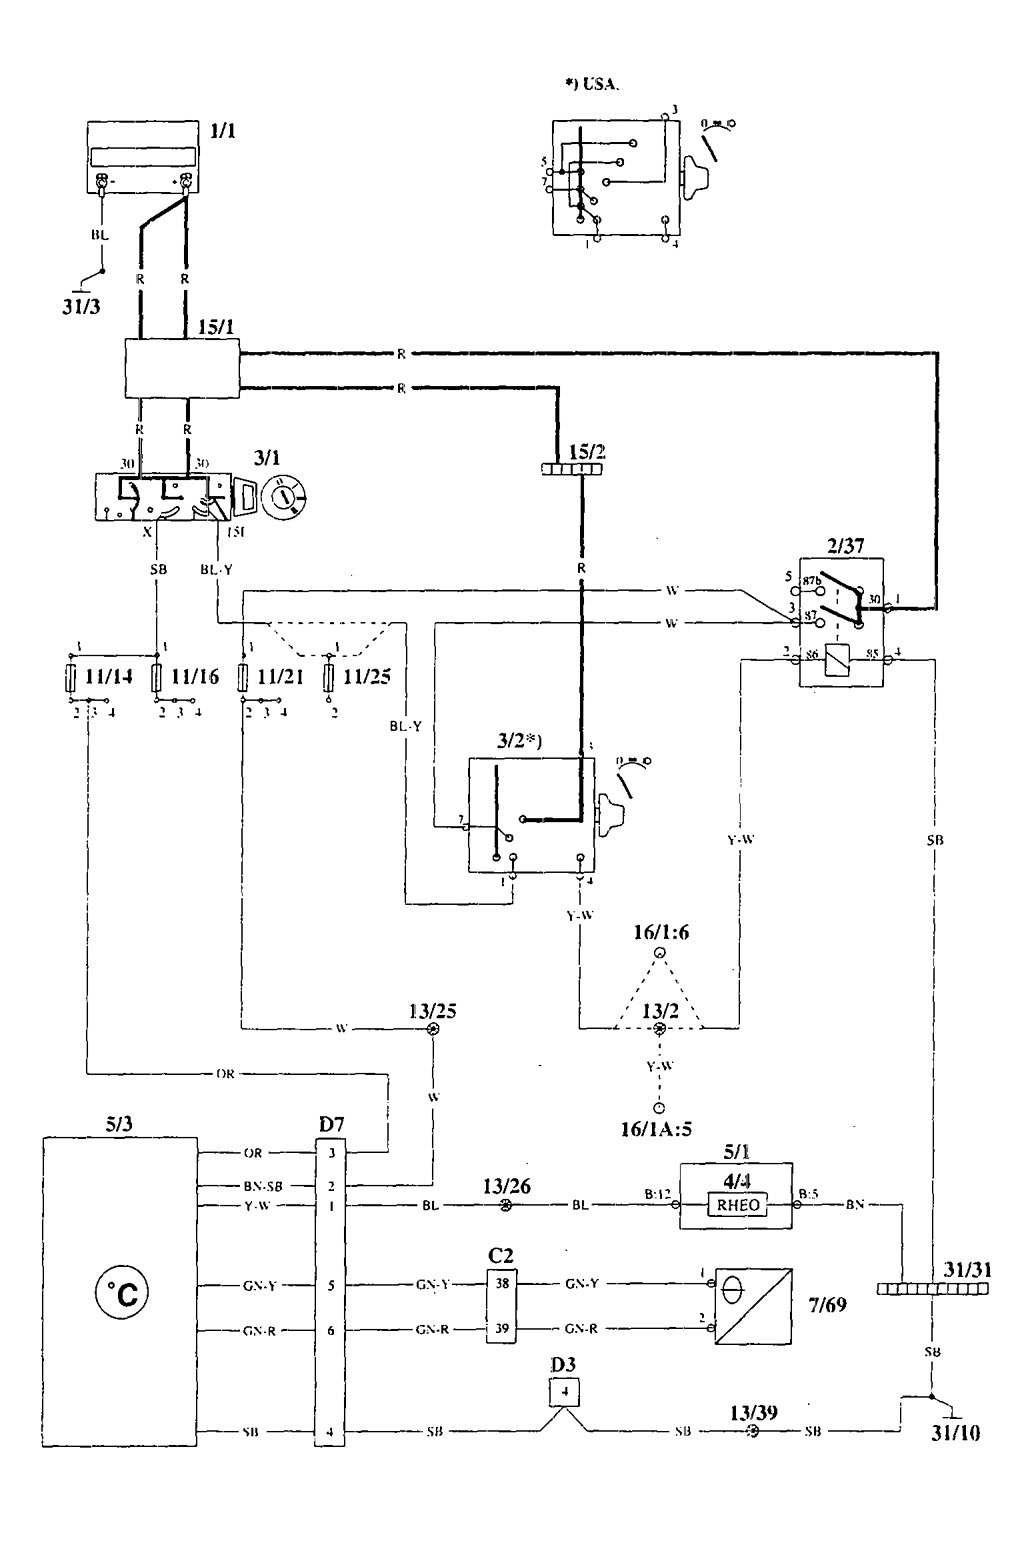 Volvo 940 Wiring Diagram 1995: Volvo 940 (1995) u2013 wiring diagrams u2013 electronic compass/outside rh:carknowledge.info,Design